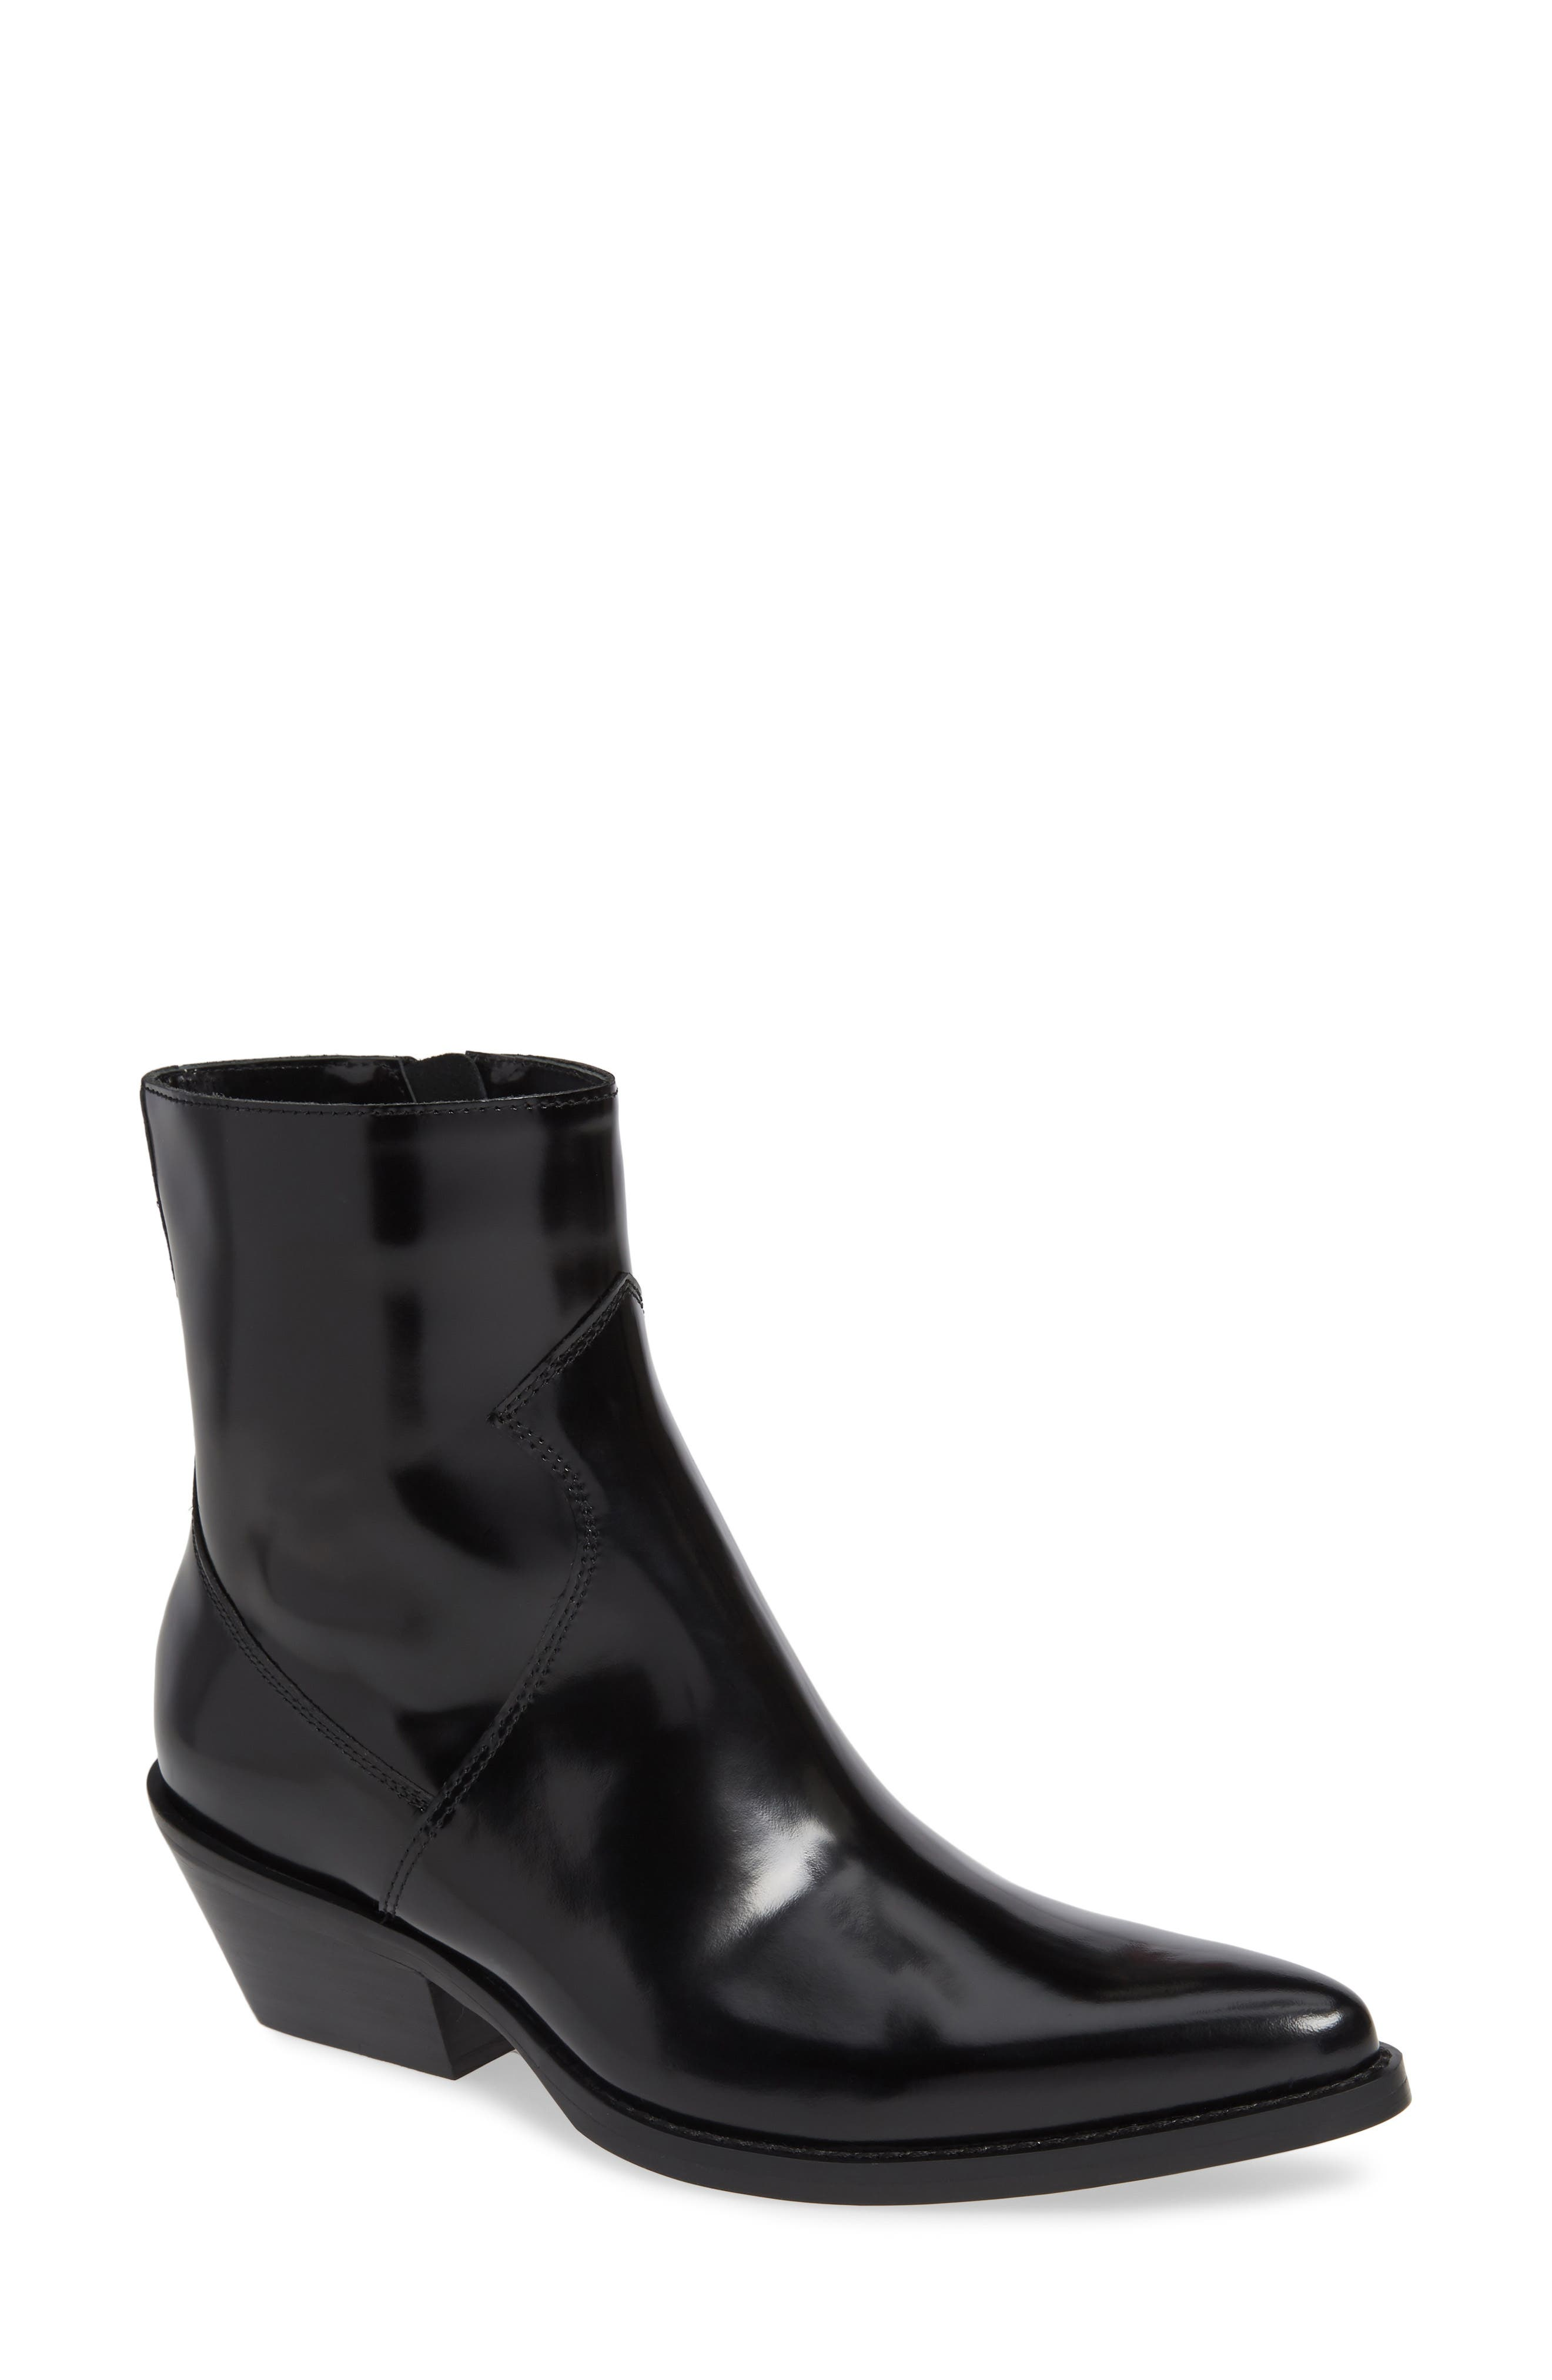 Calvin Klein Adrianna Bootie,                         Main,                         color, BLACK LEATHER